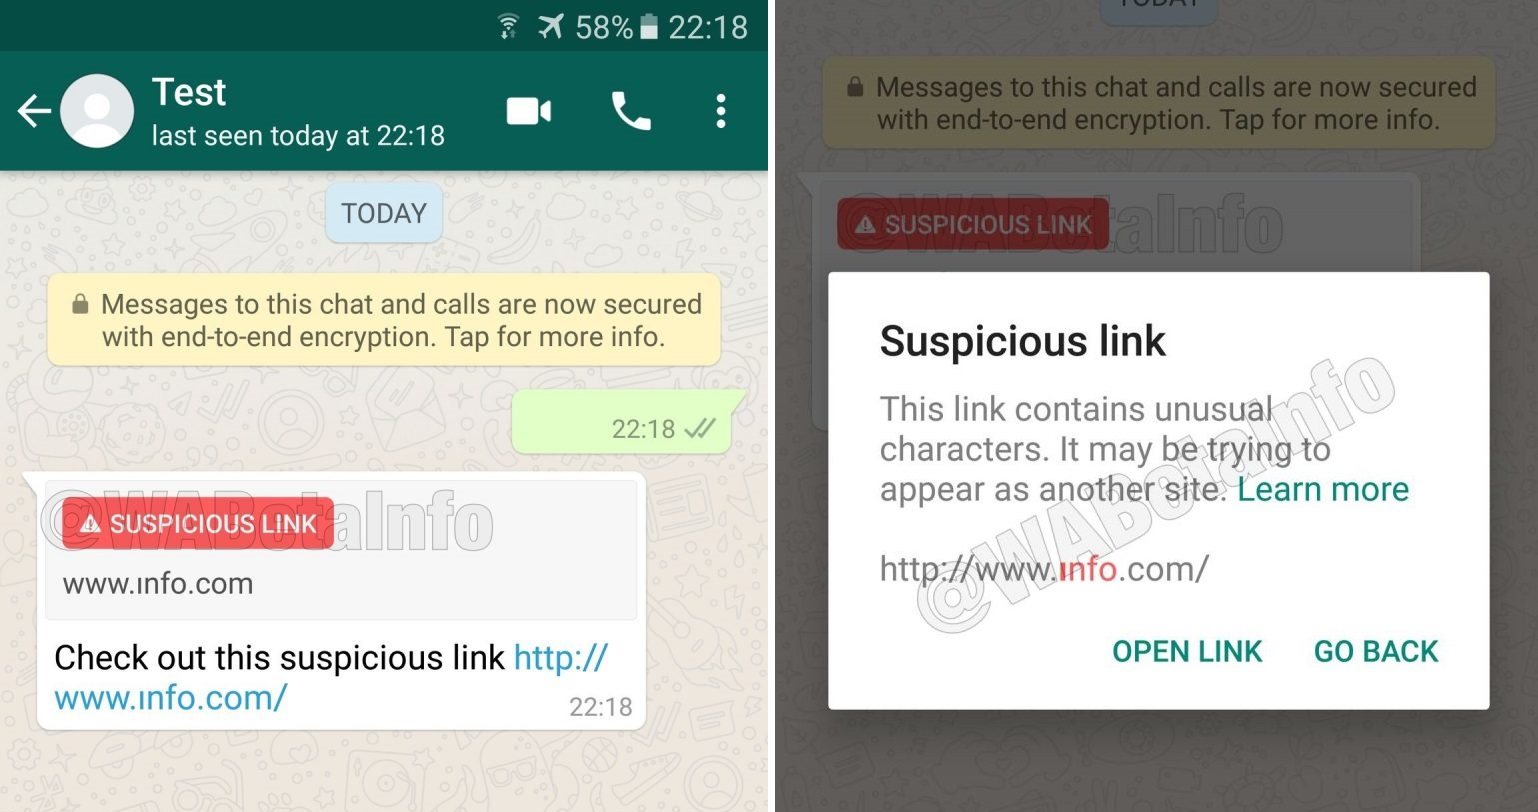 WhatsApp adds suspicious link detection feature to Android 1